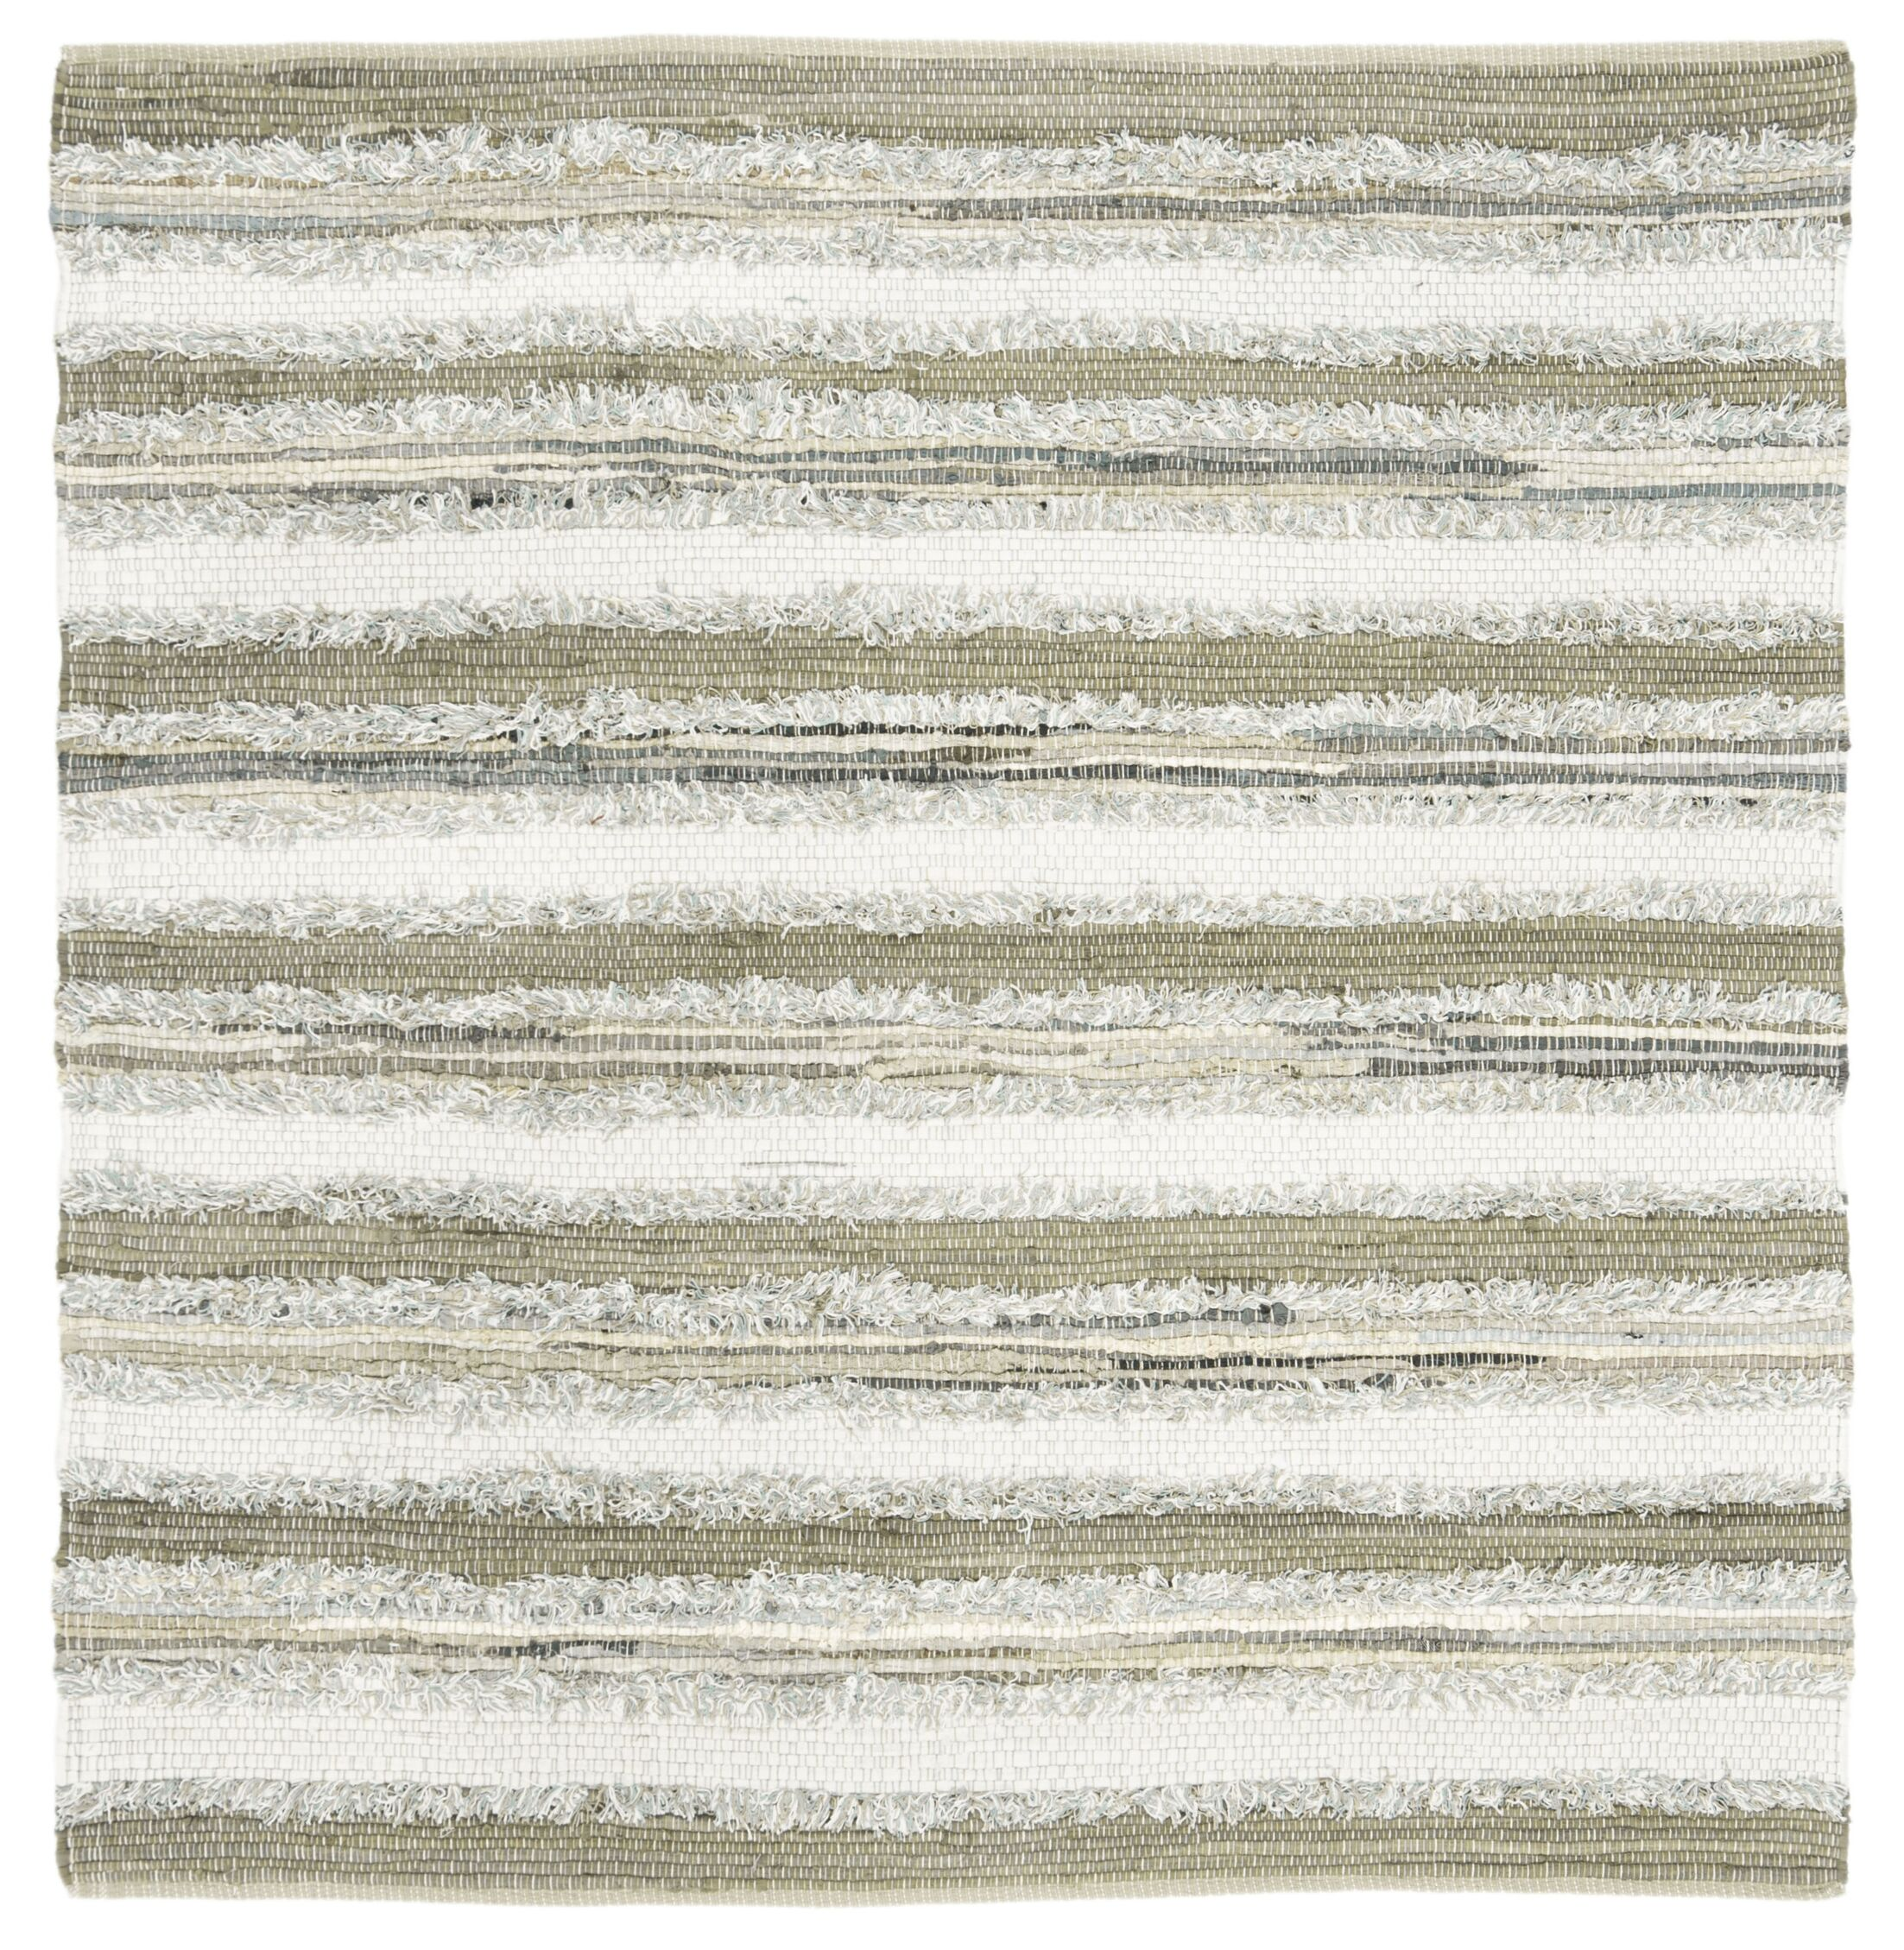 Bester Hand-Woven Cotton Beige Area Rug Rug Size: Square 6'